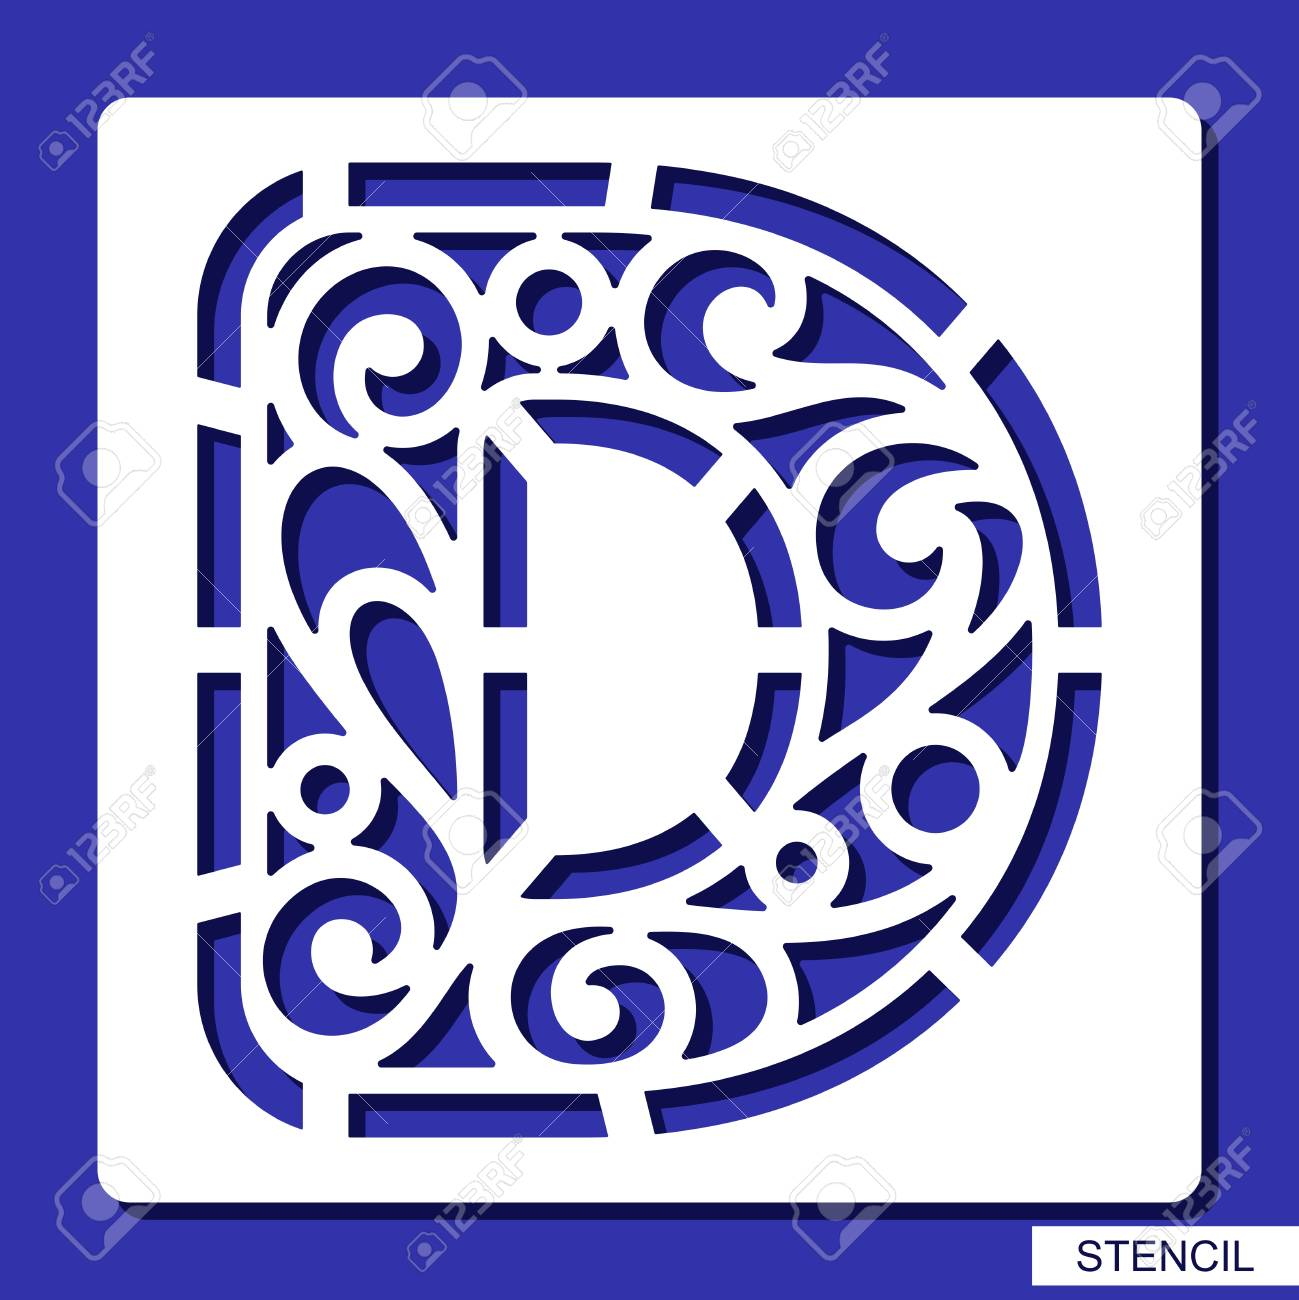 Letter D Templates.Stencil Alphabet Lacy Letter D Template For Laser Cutting